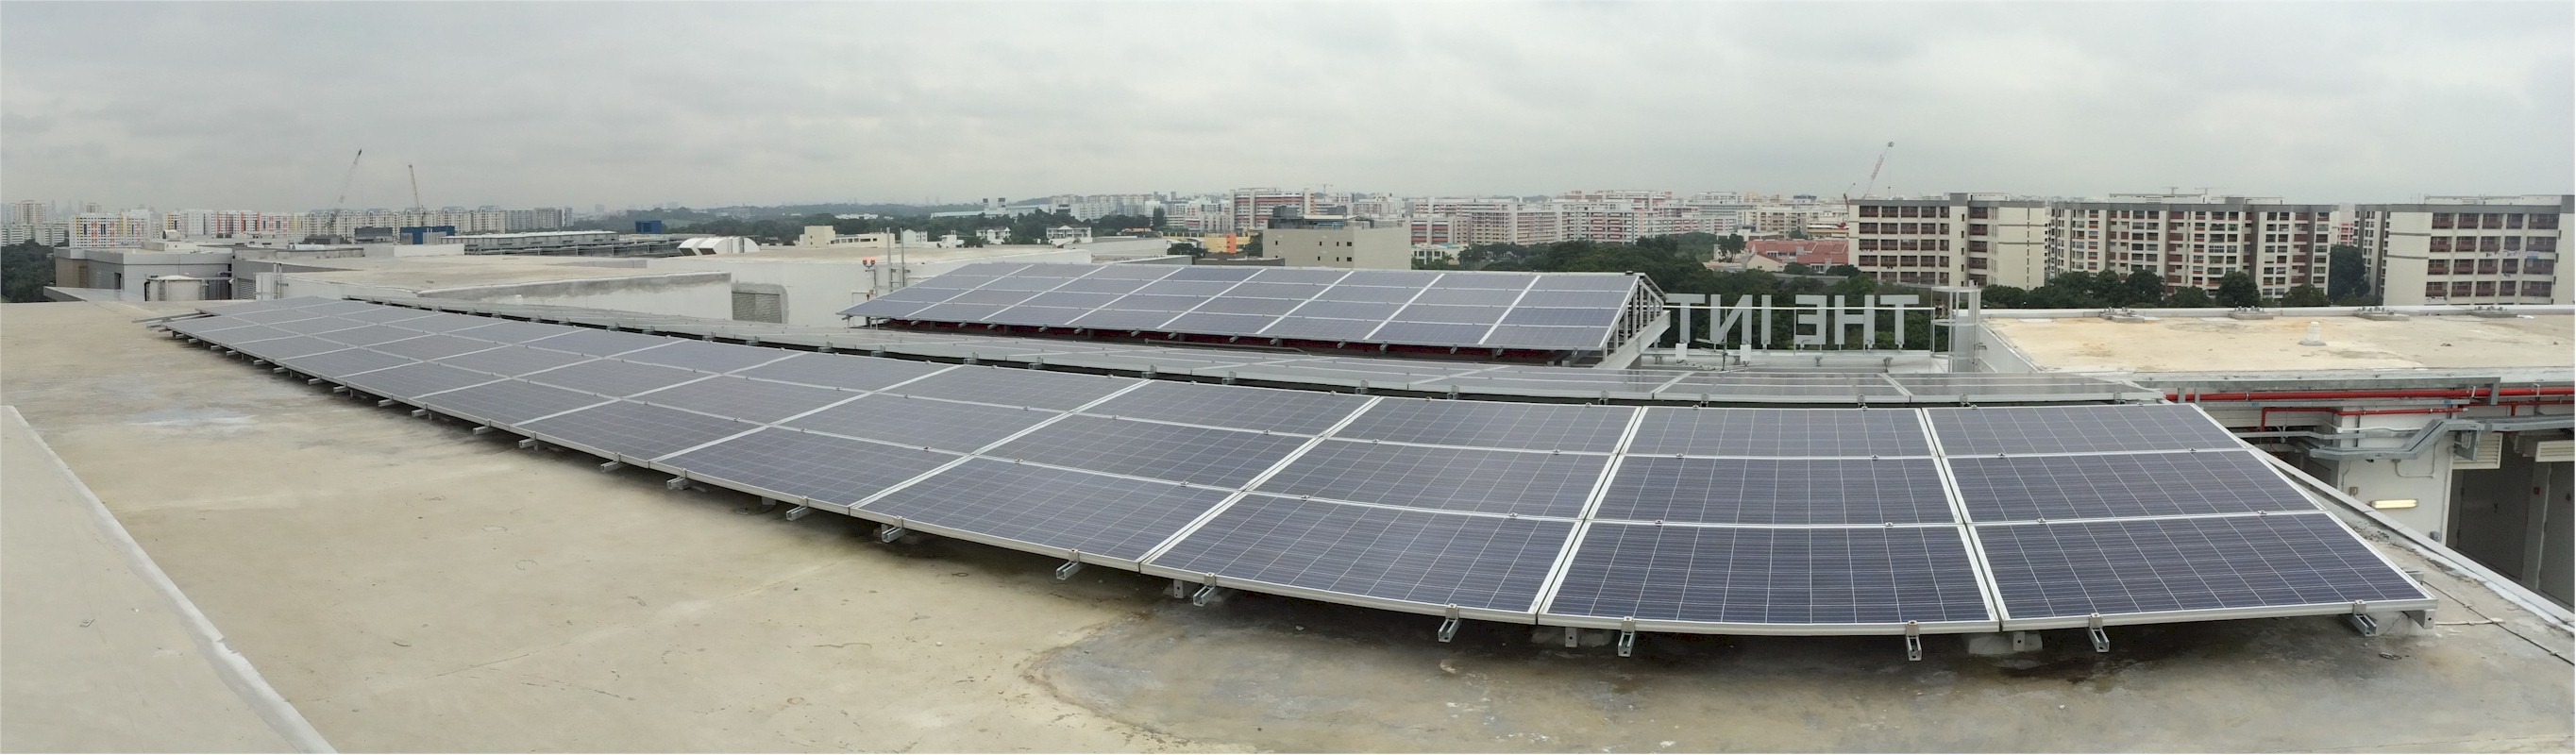 Grid Tied Pv System At Cgh